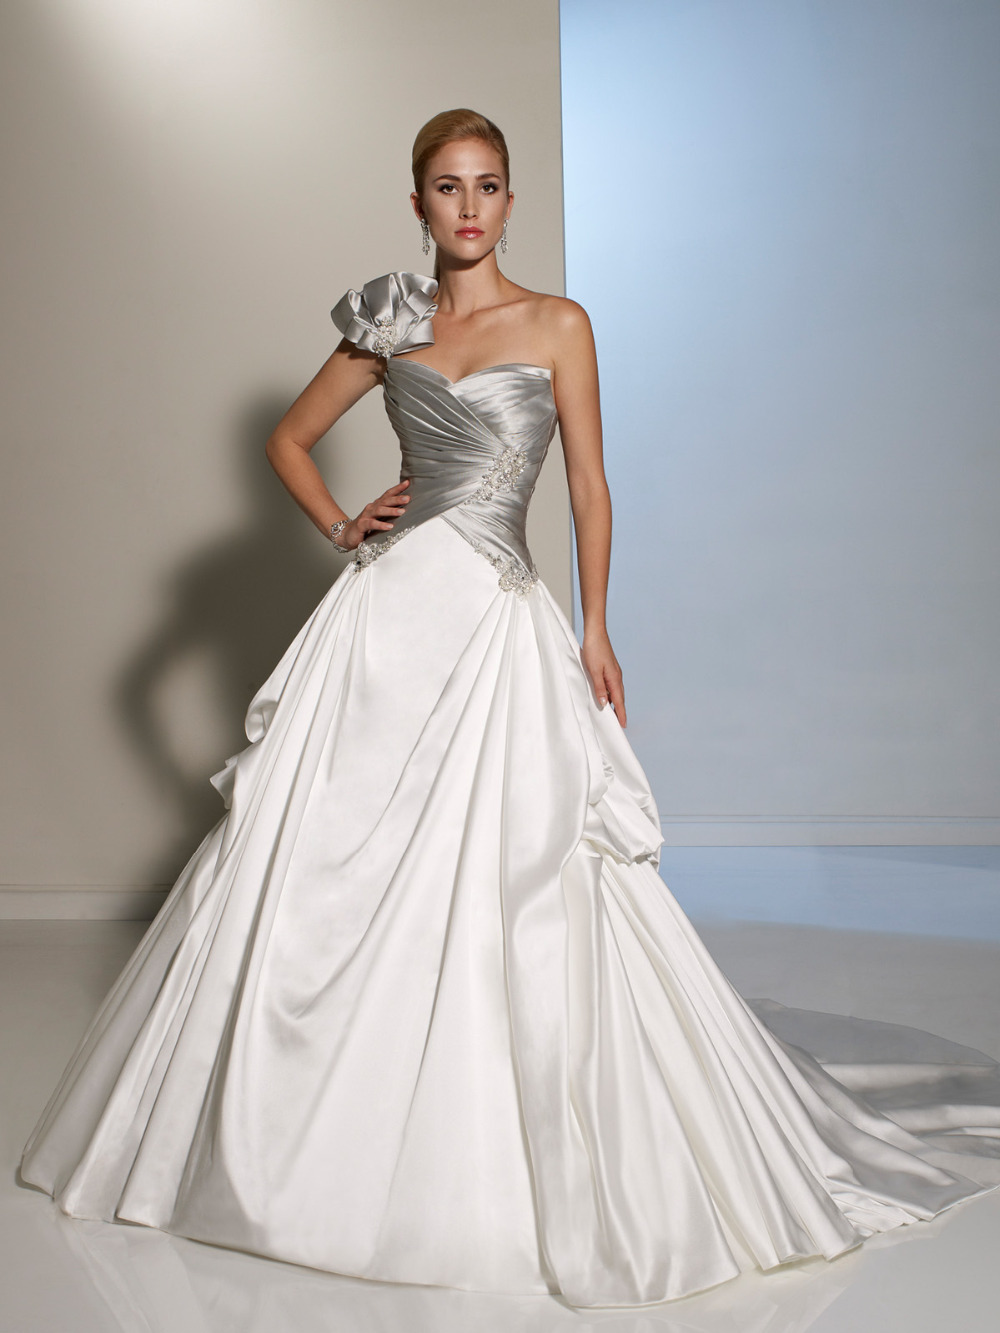 High Fashion Elegant Women Wedding Dresses Made In China